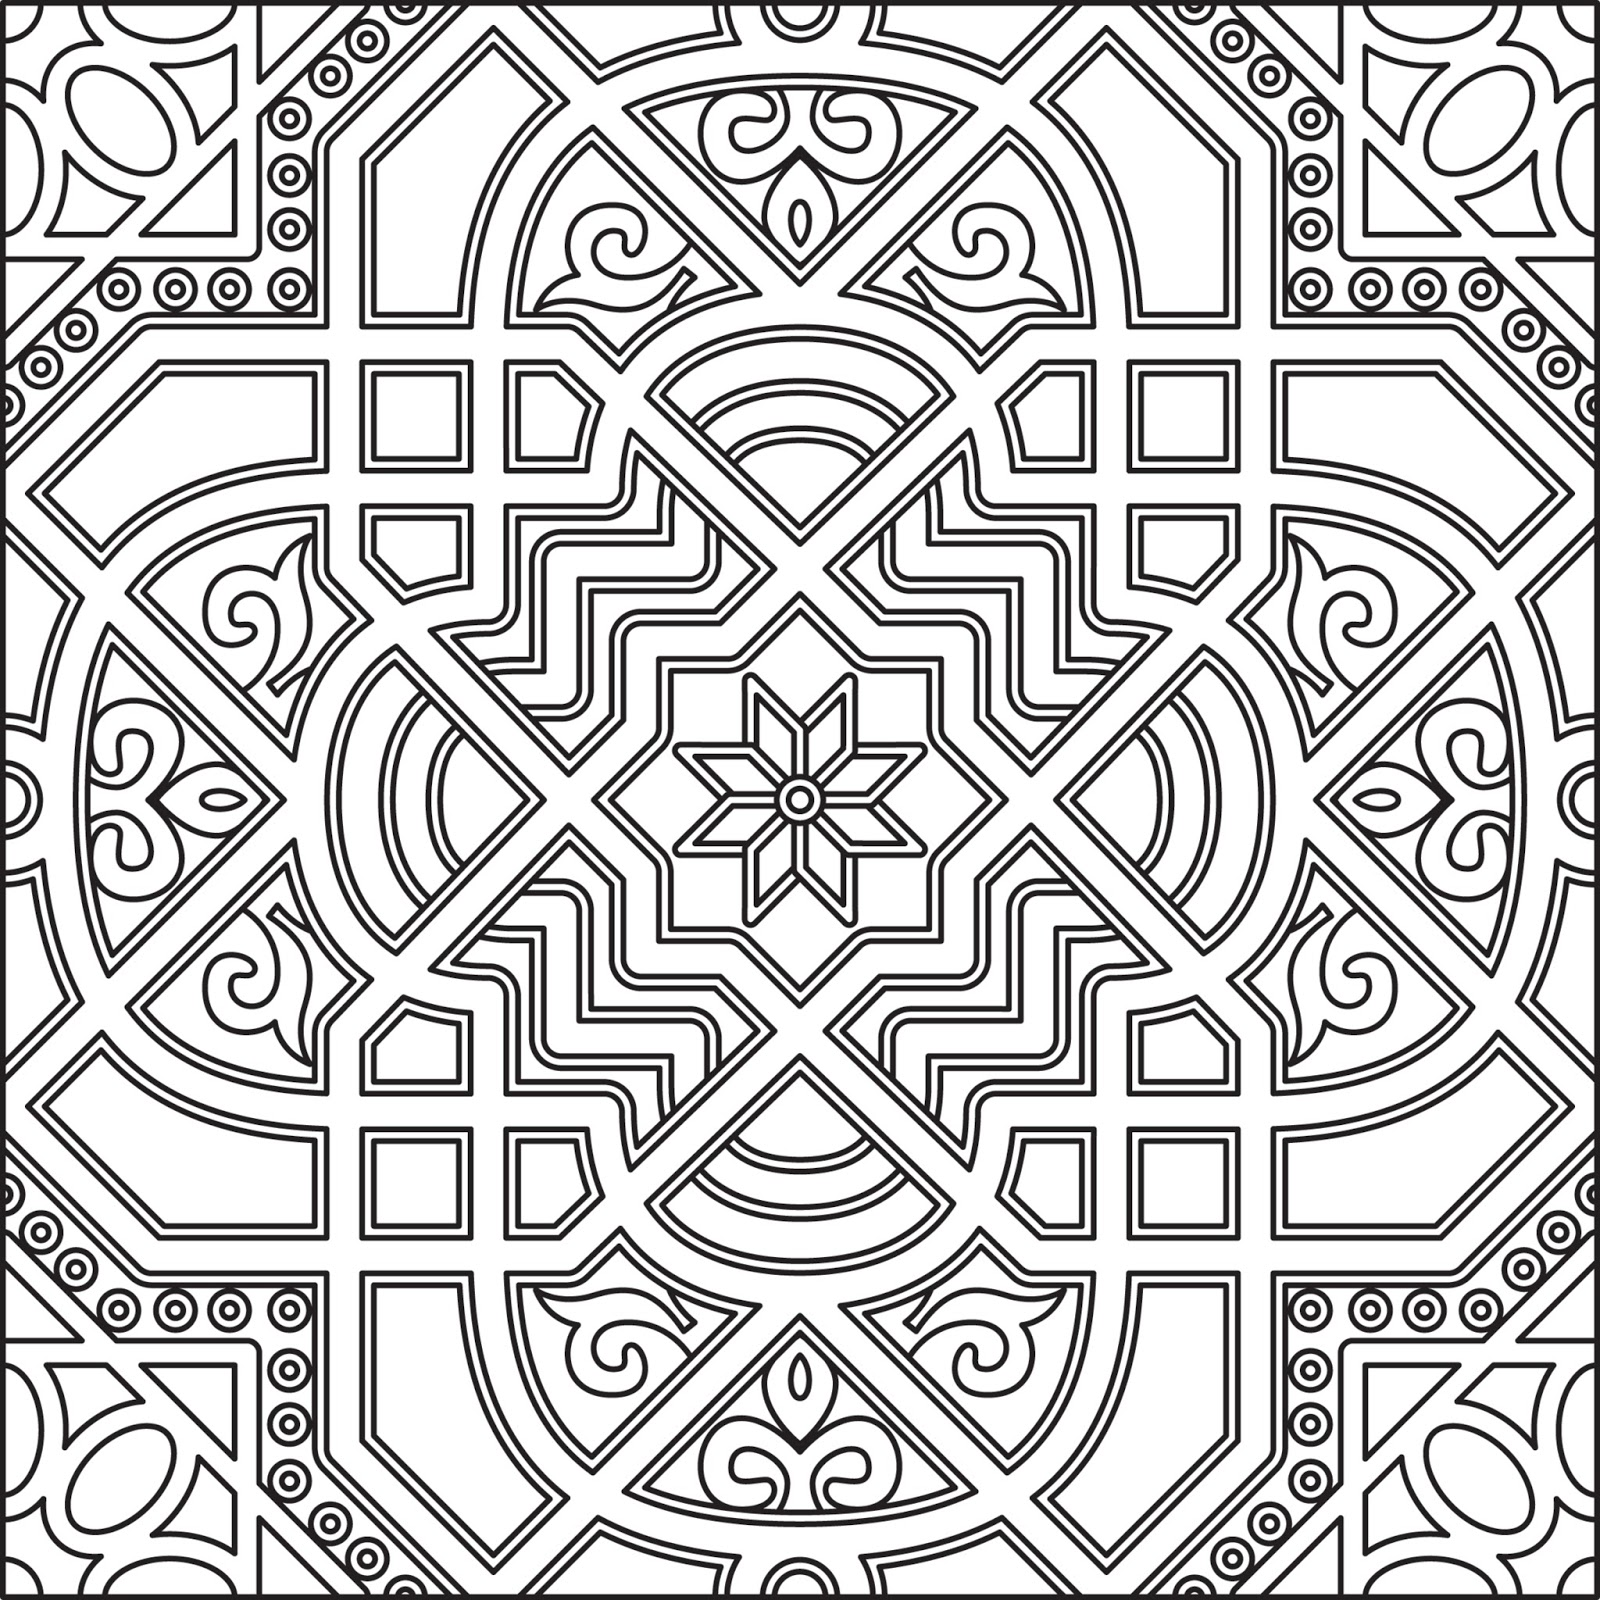 1600x1600 Black And White Islamic Art Design Patterns Arabic